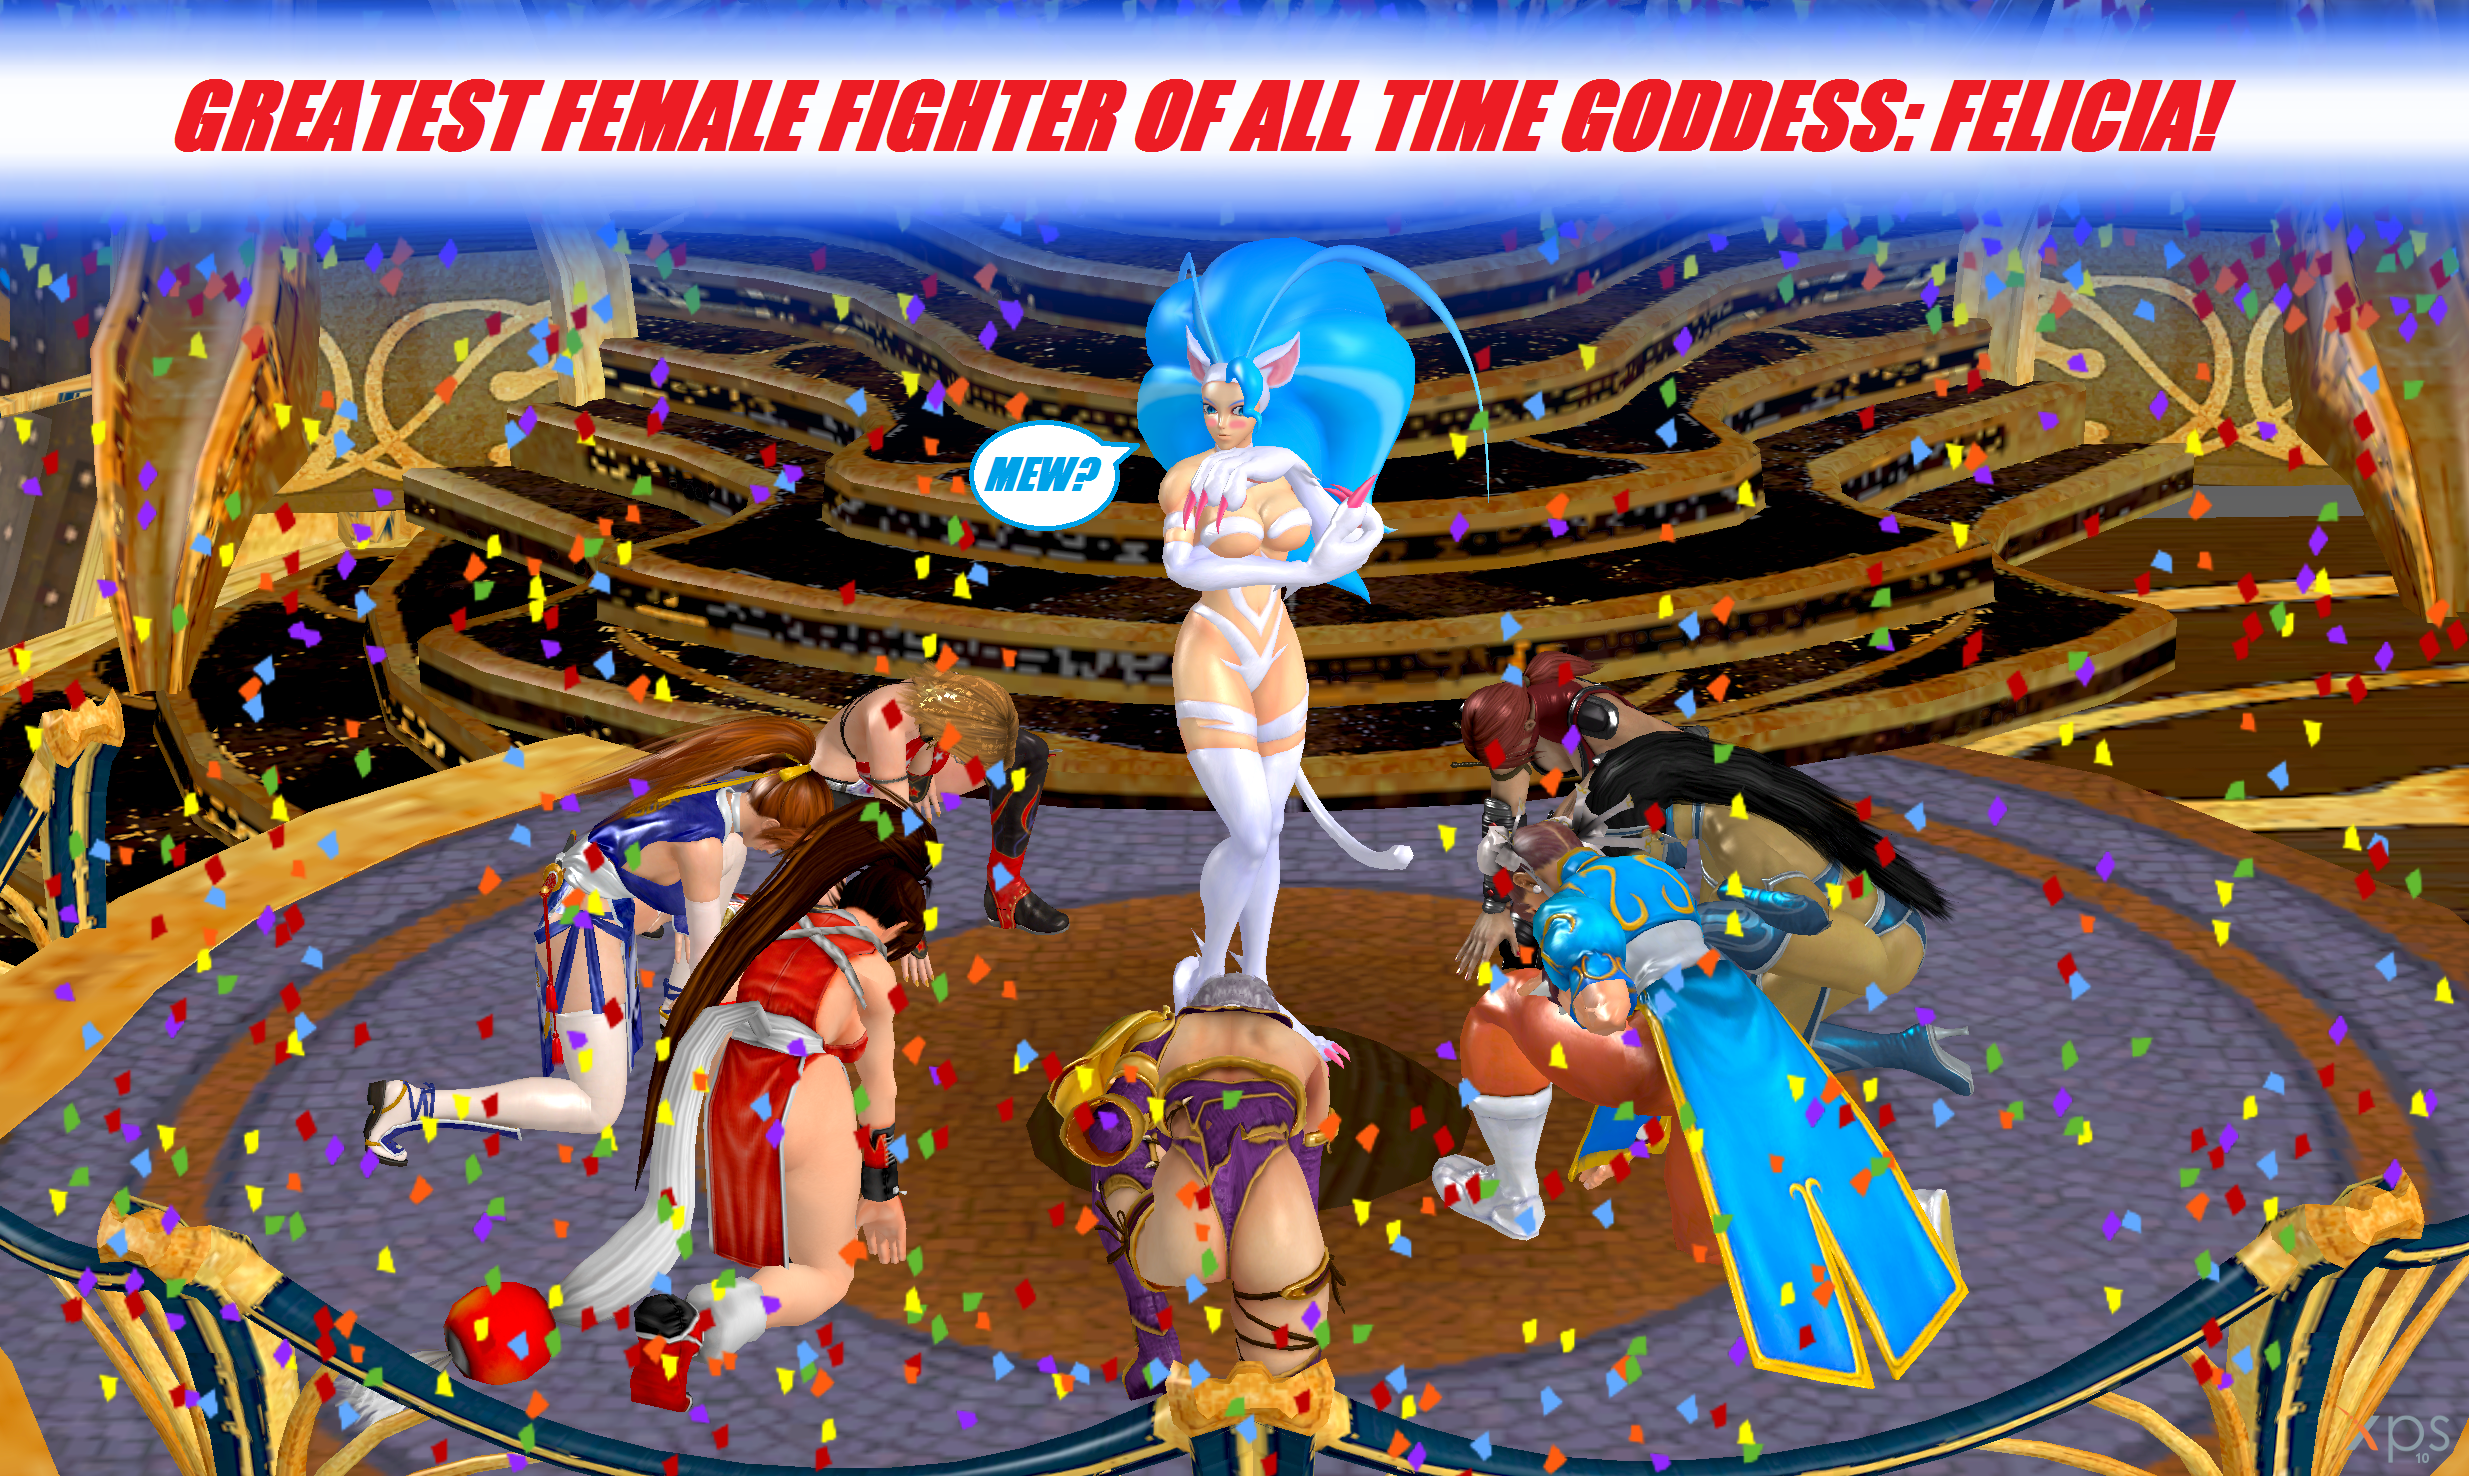 Felicia: the Greatest Female Fighter of All Time! by NekoHybrid